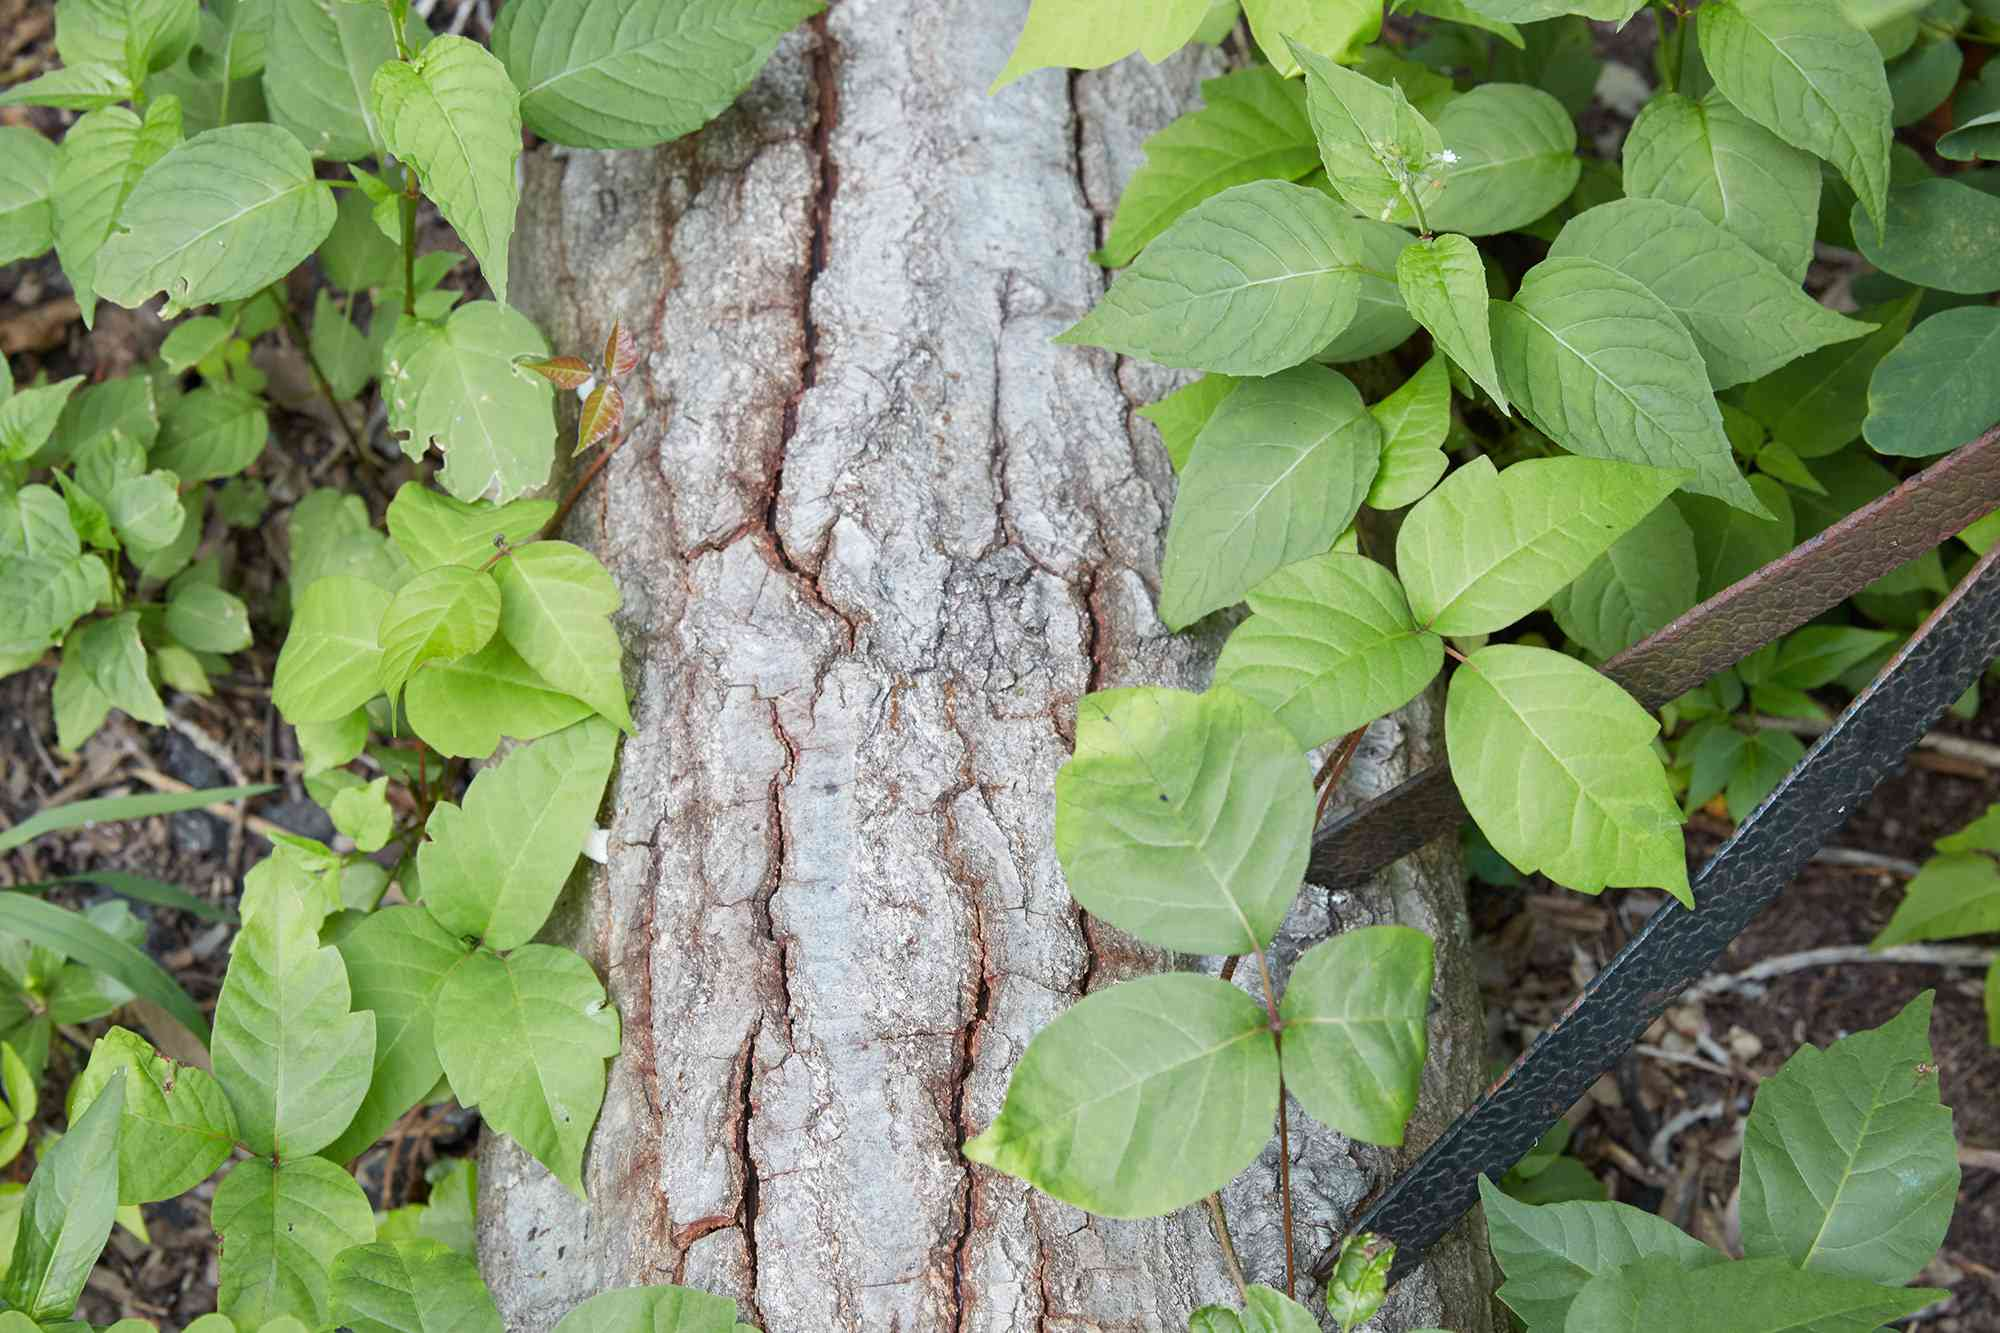 Poison ivy vine climbing tree bark and identified with three glossy green leaflets